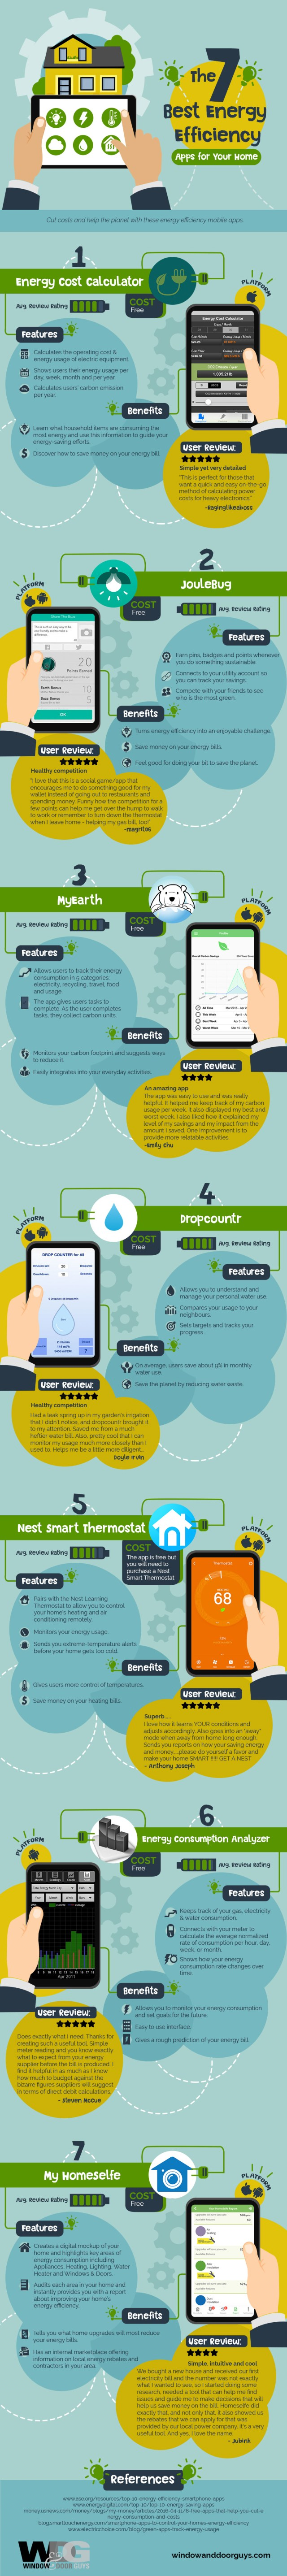 7 free energy-saving apps for your home